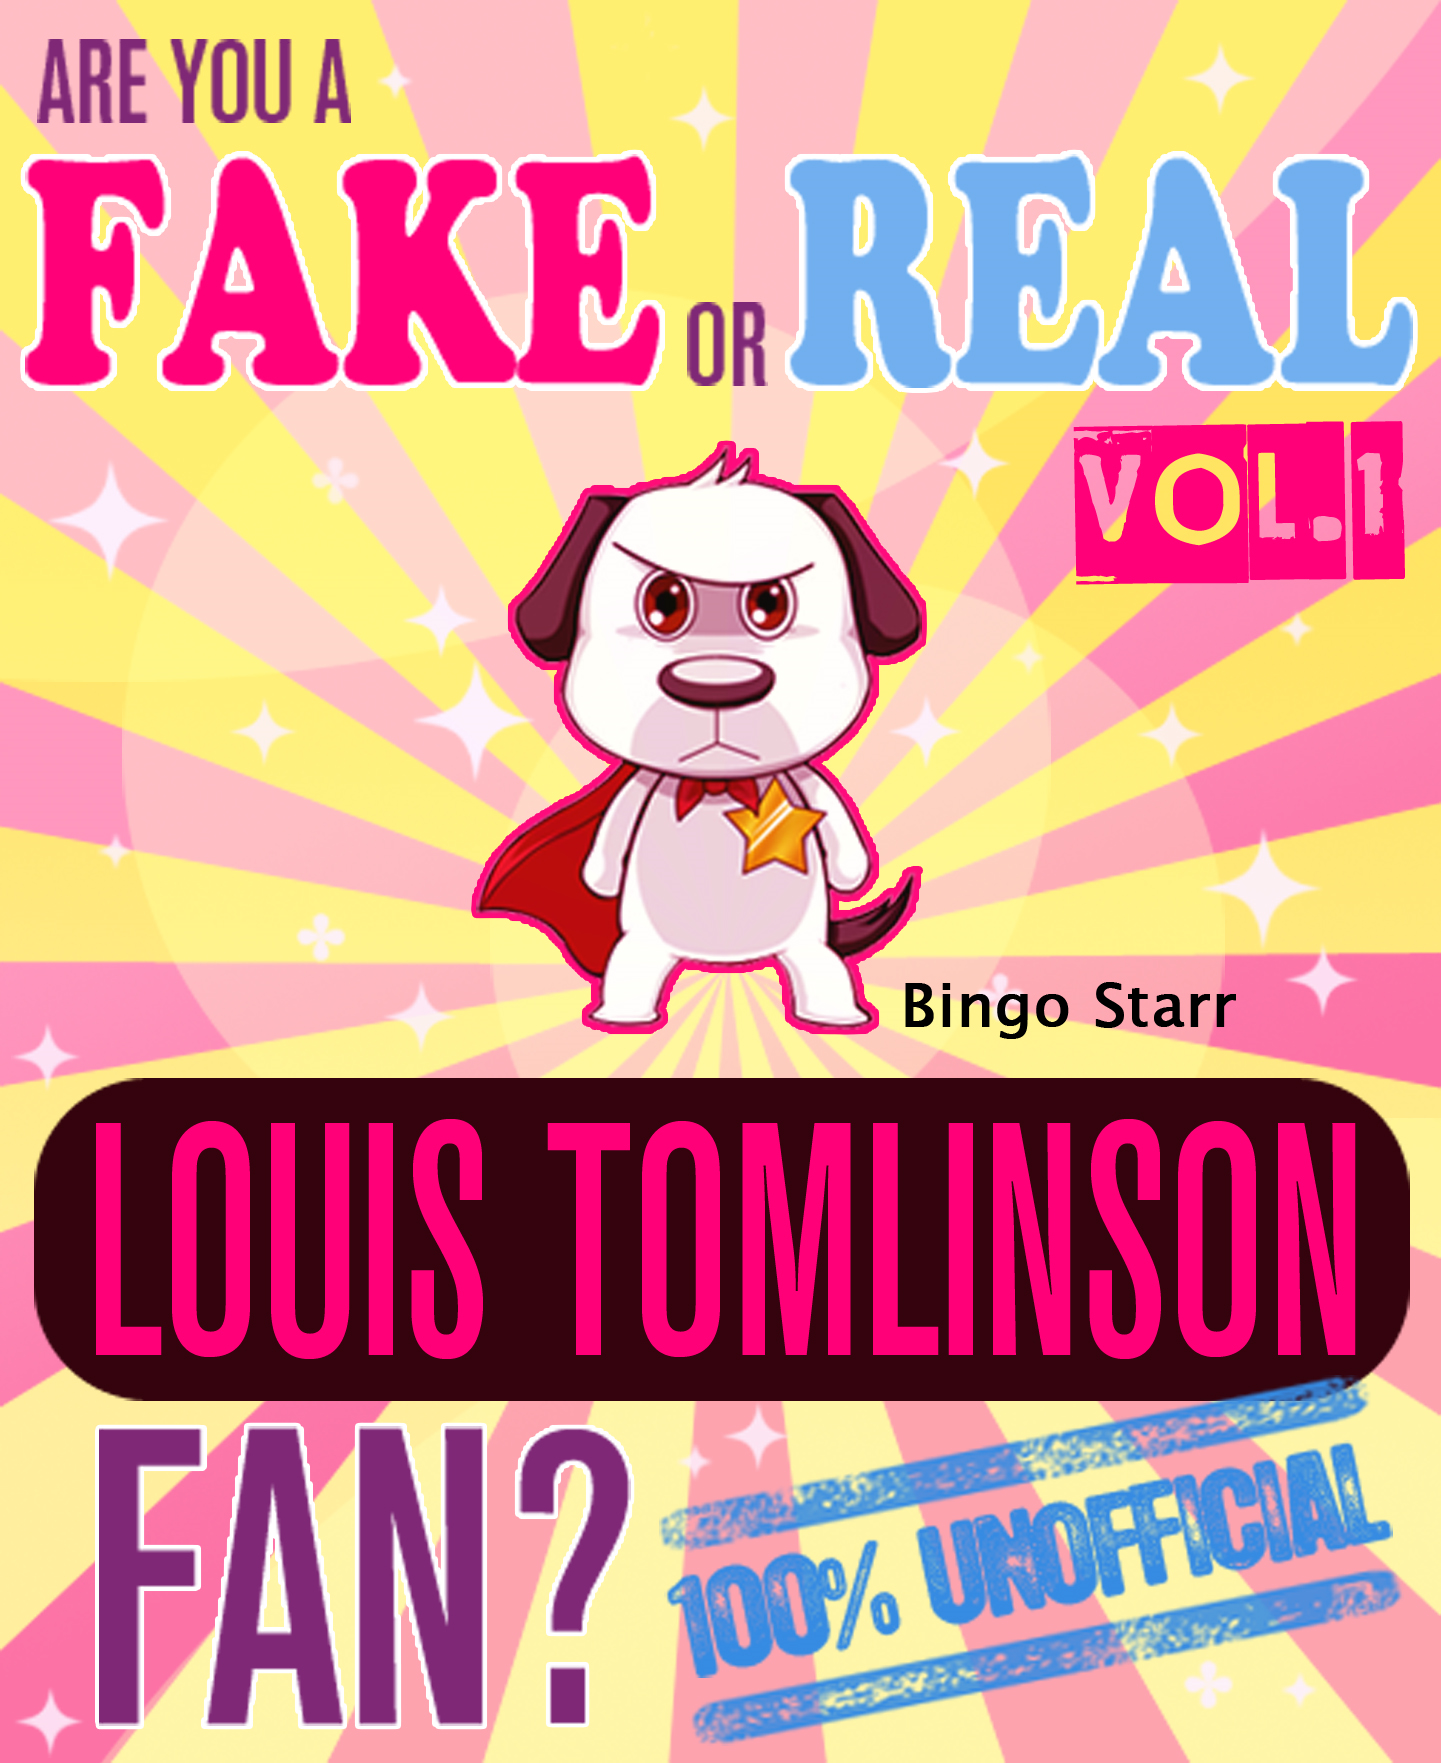 Are You a Fake or Real Louis Tomlinson Fan? Volume 1 - The 100% Unofficial Quiz and Facts Trivia Travel Set Game By: Bingo Starr